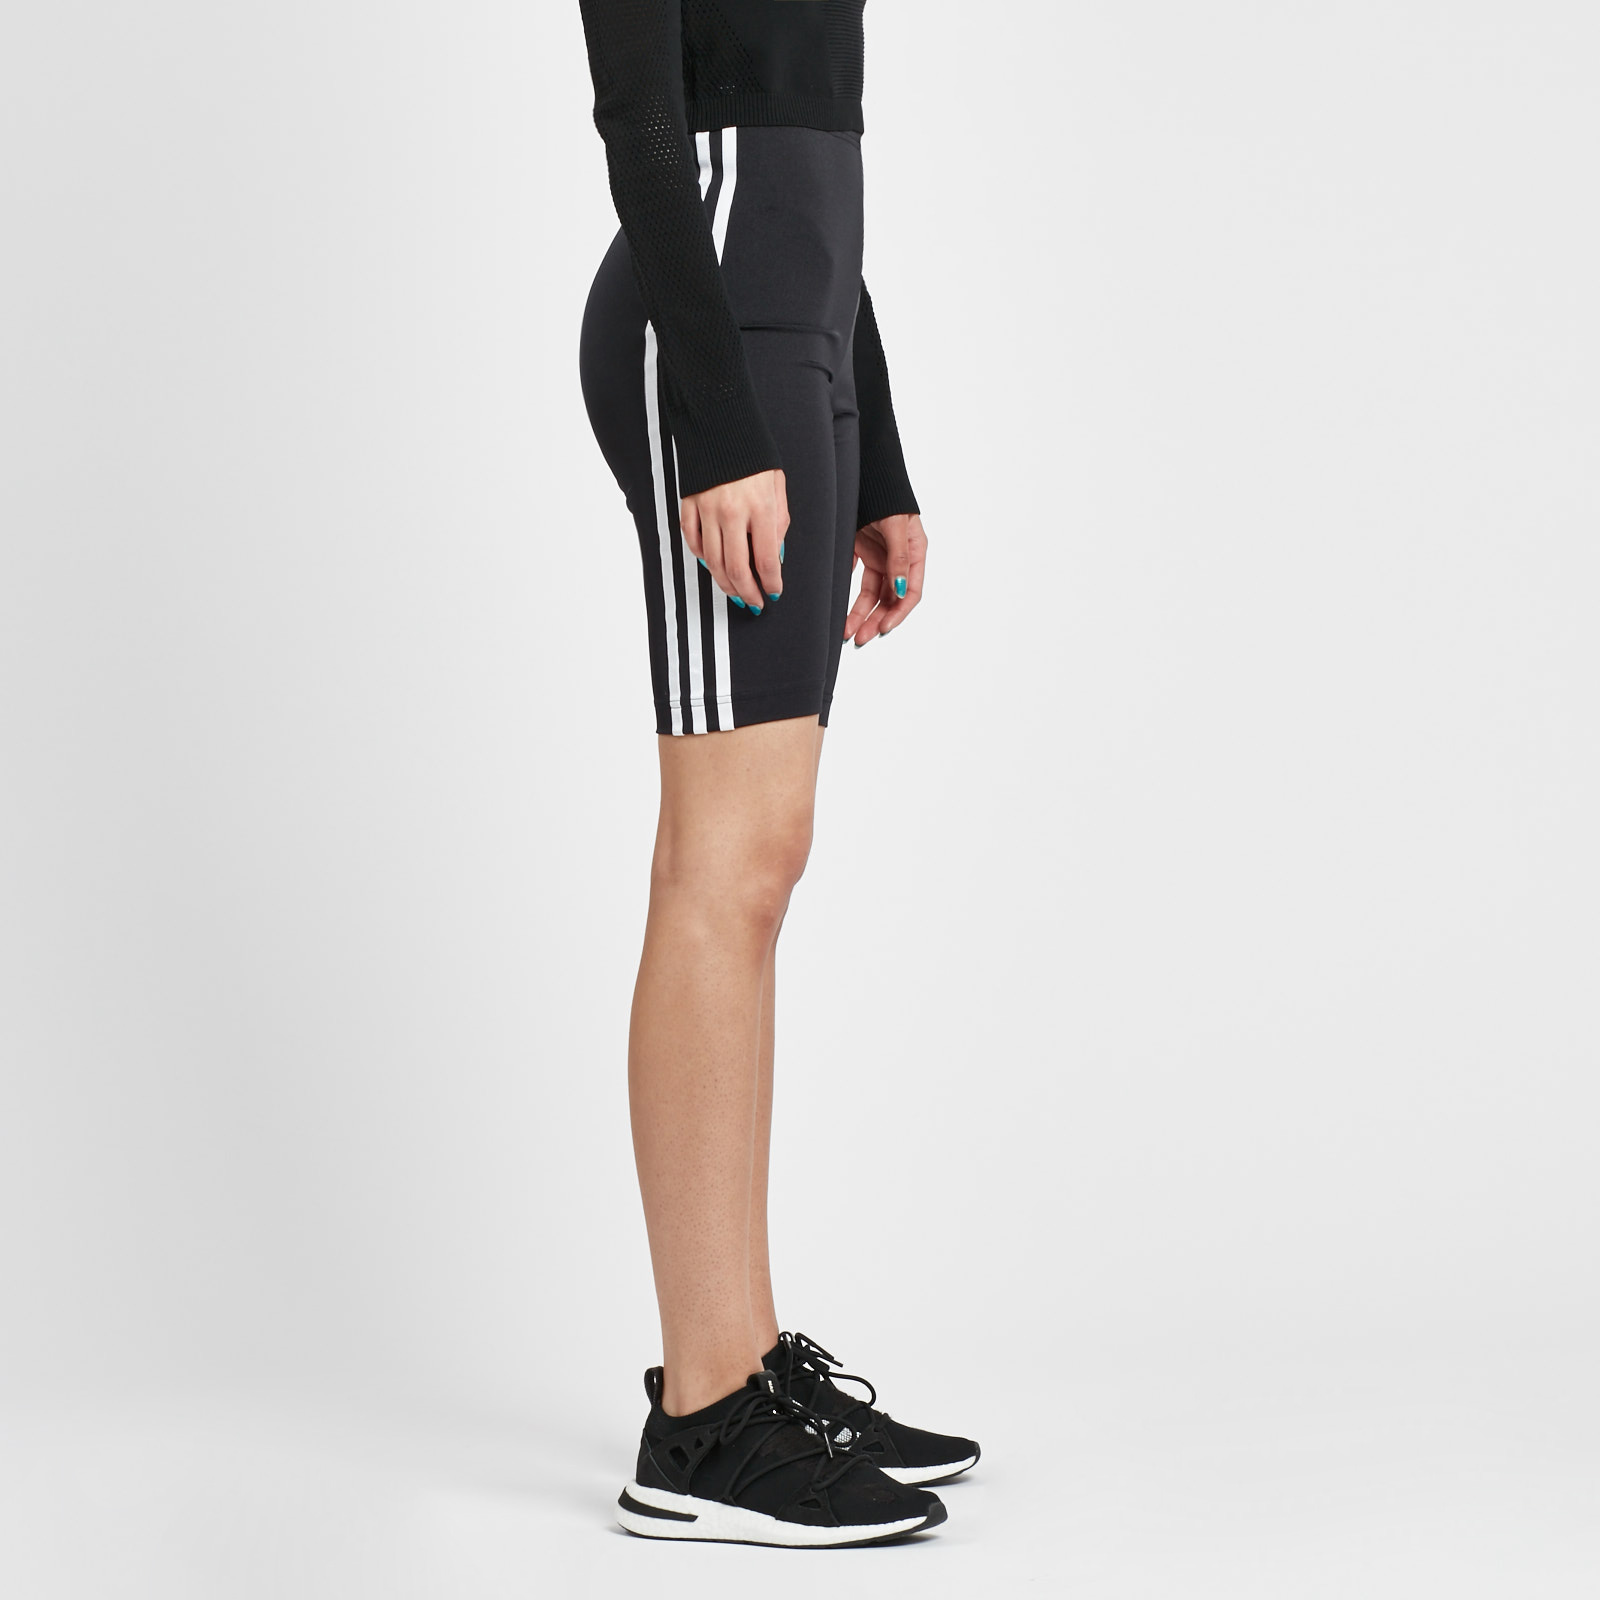 cd90429e587 adidas Bike Shorts x Naked - Cy4792 - Sneakersnstuff